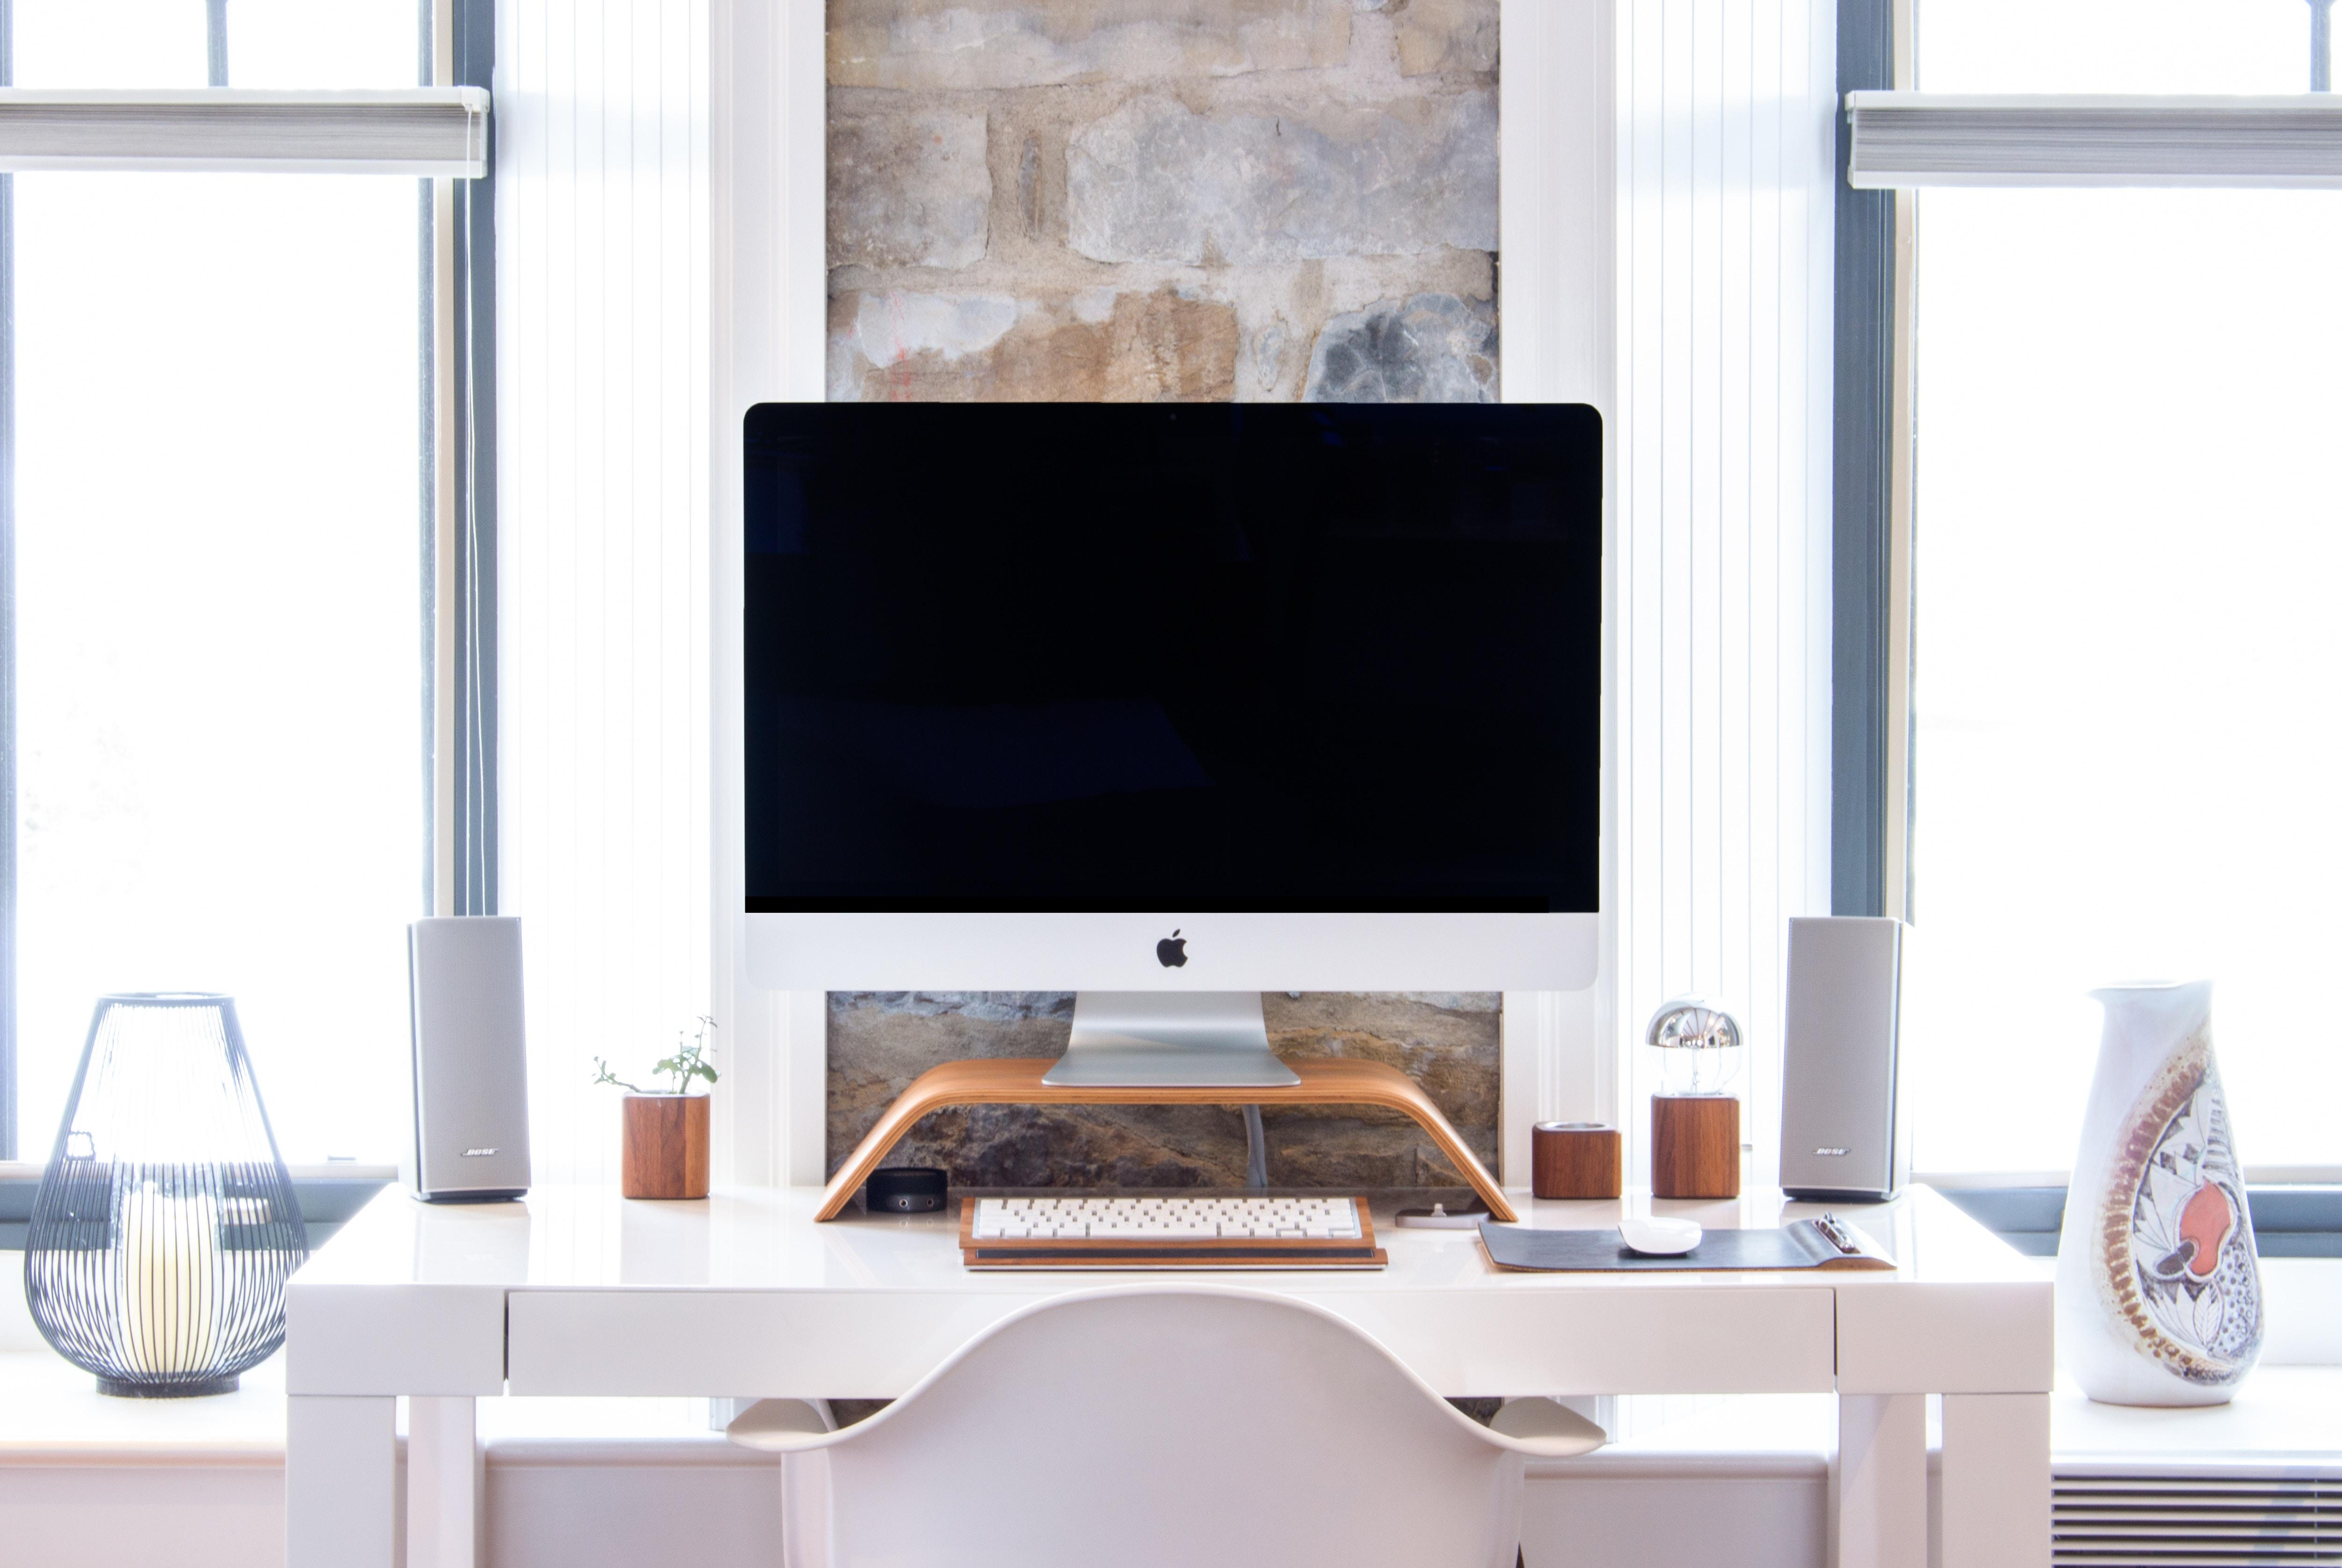 marvellous ultimate home office | How to create the ultimate home office | Leapfrog Property ...